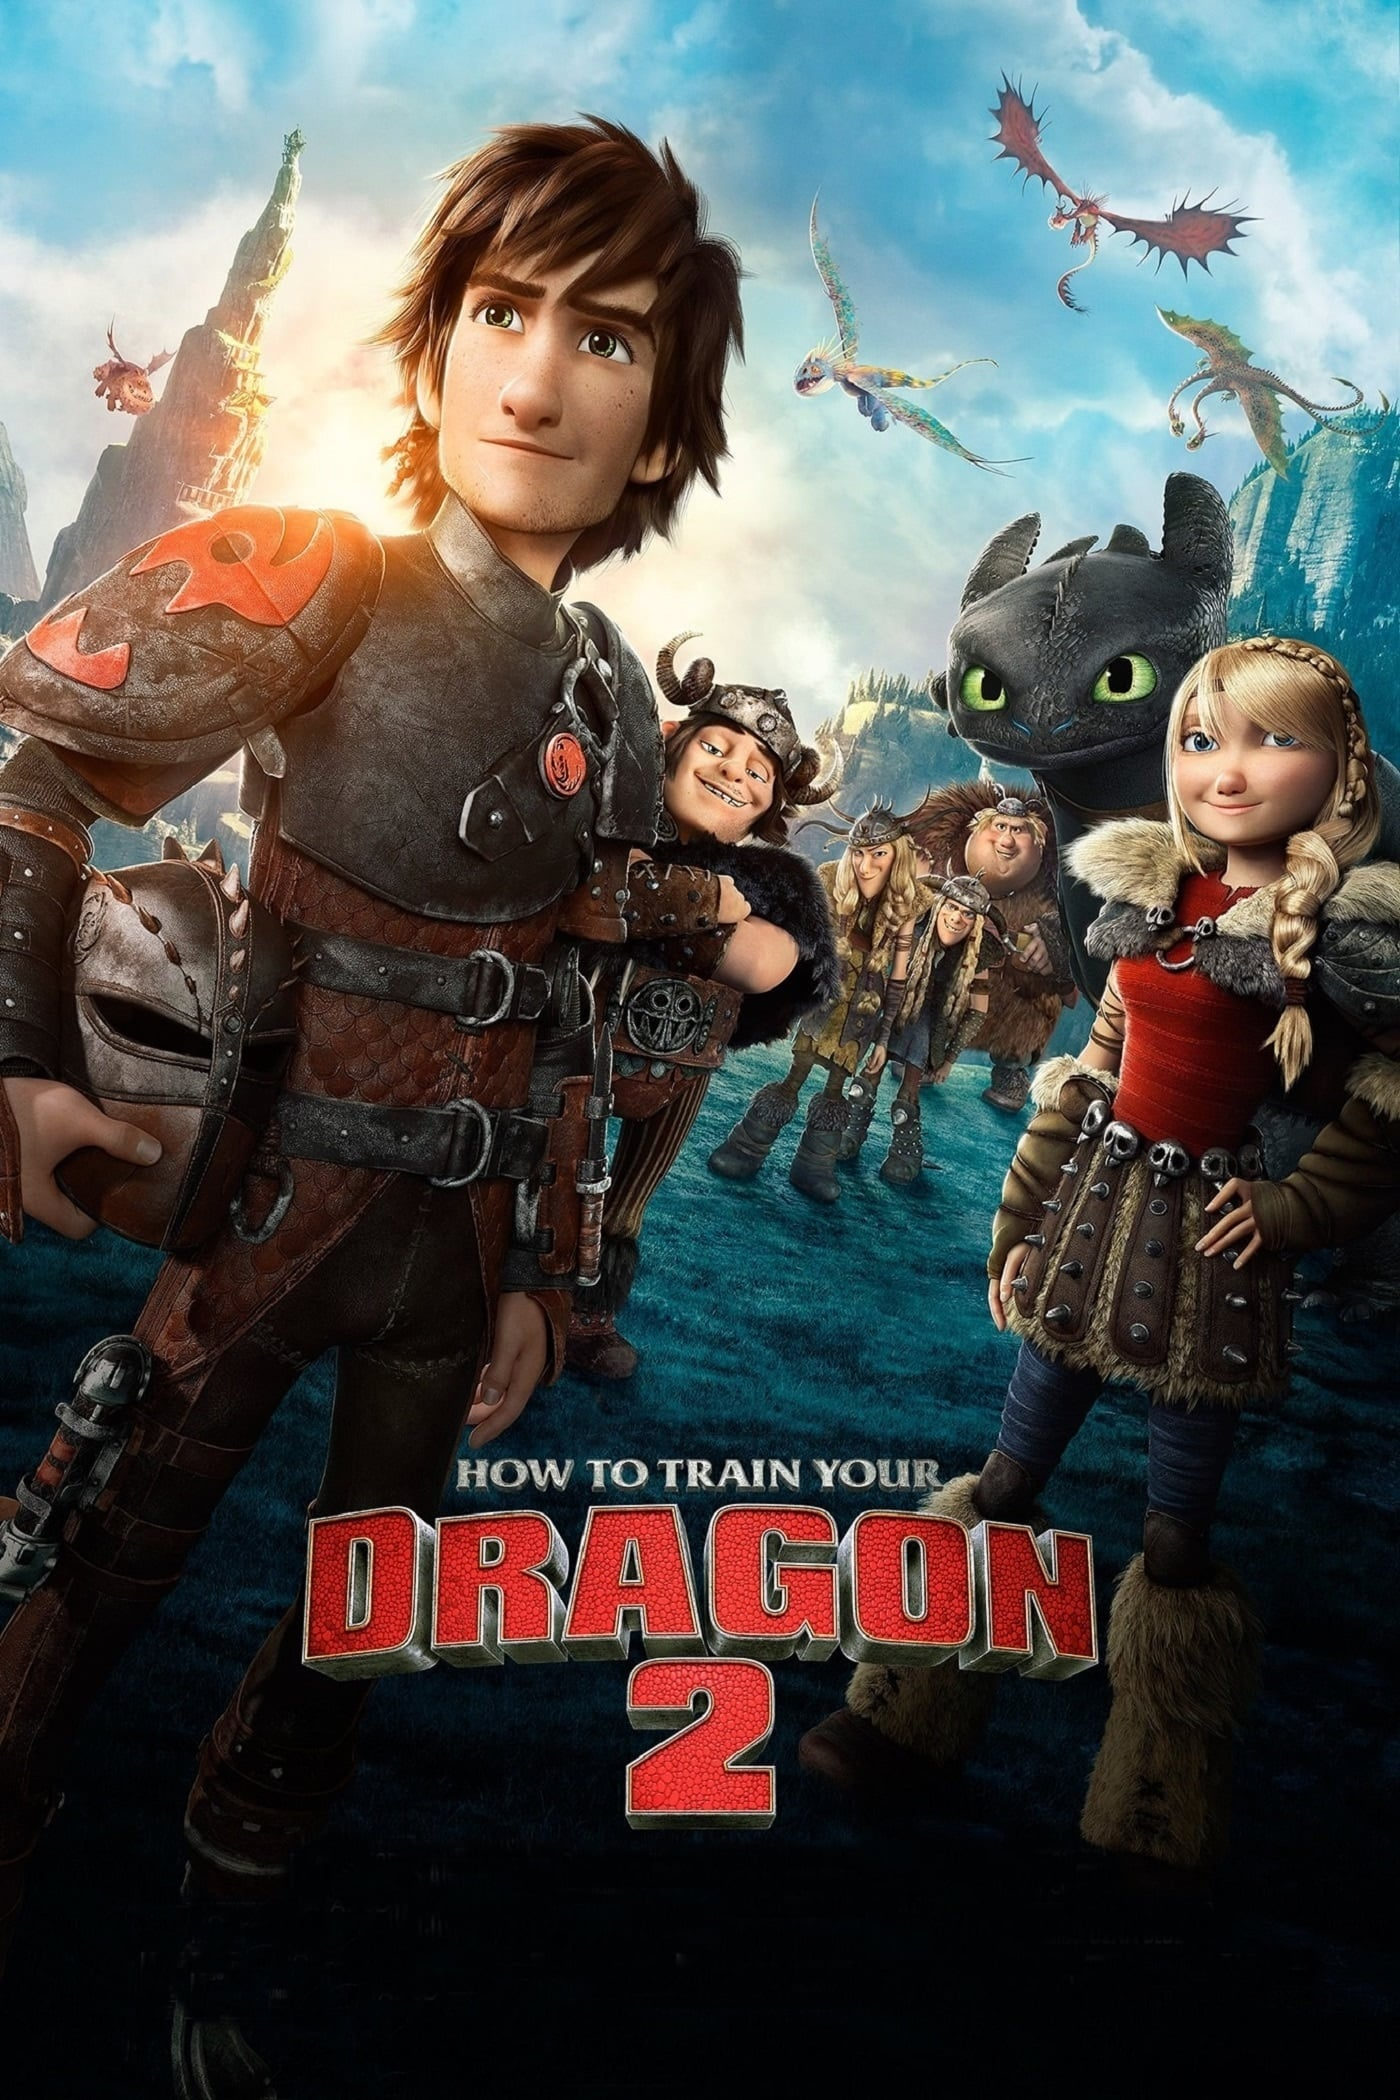 how to train your dragon online hd